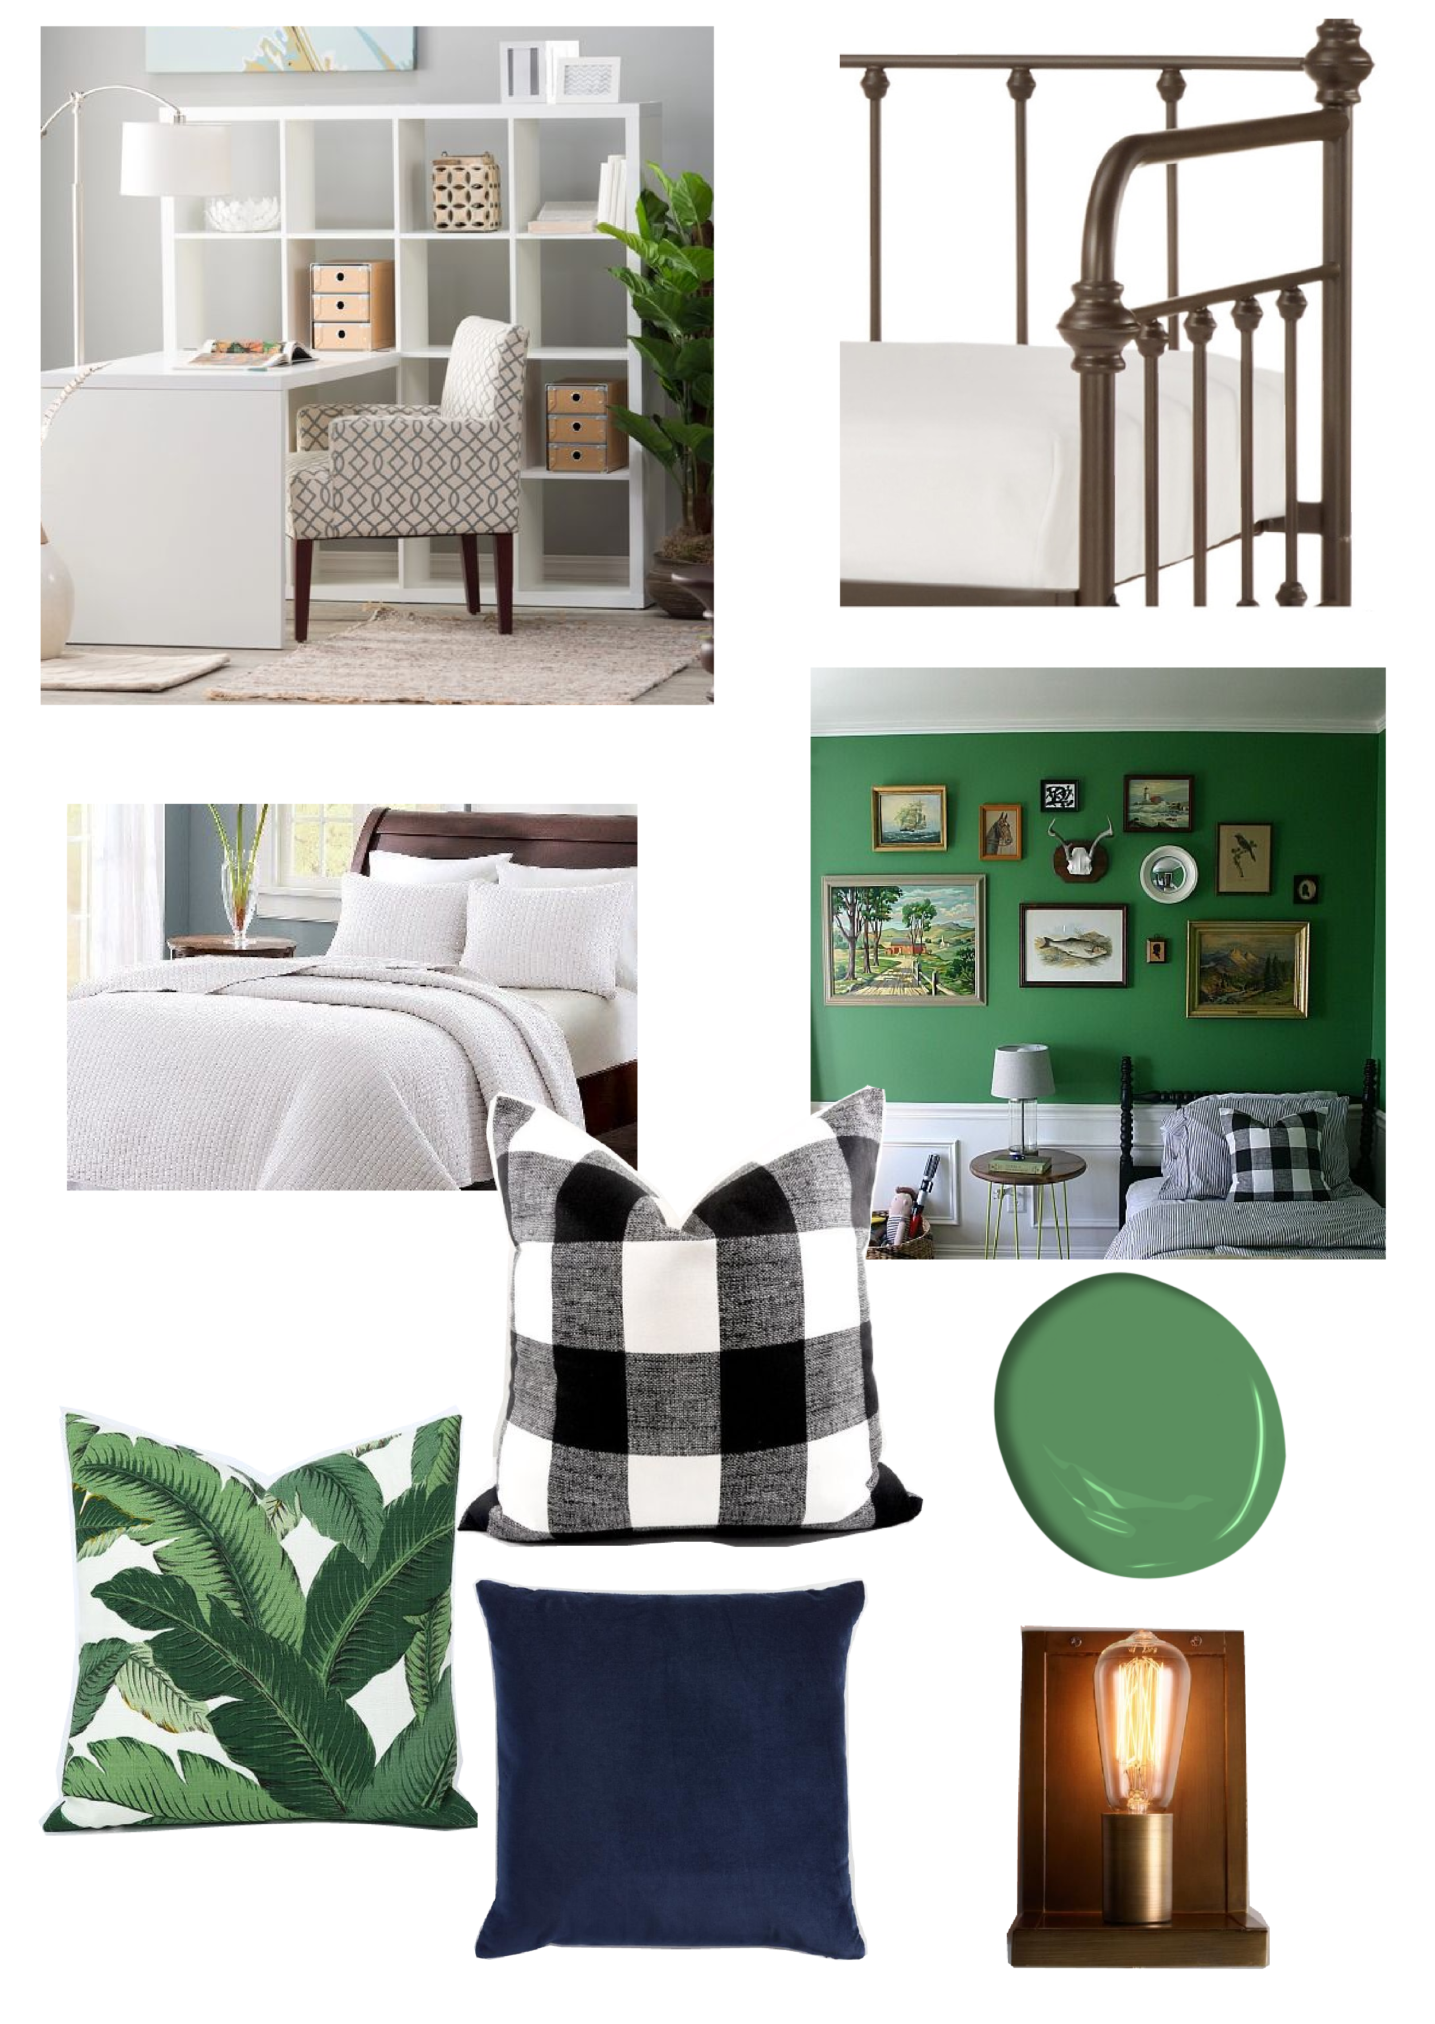 One Room Challenge Home Office and Guest Room makeover, this Modern vintage inspired space with a pop of bunker hill green. More at www.homewithkeki.com #oneroomchallenge #homeoffice #interiors #guestroom #moodboards